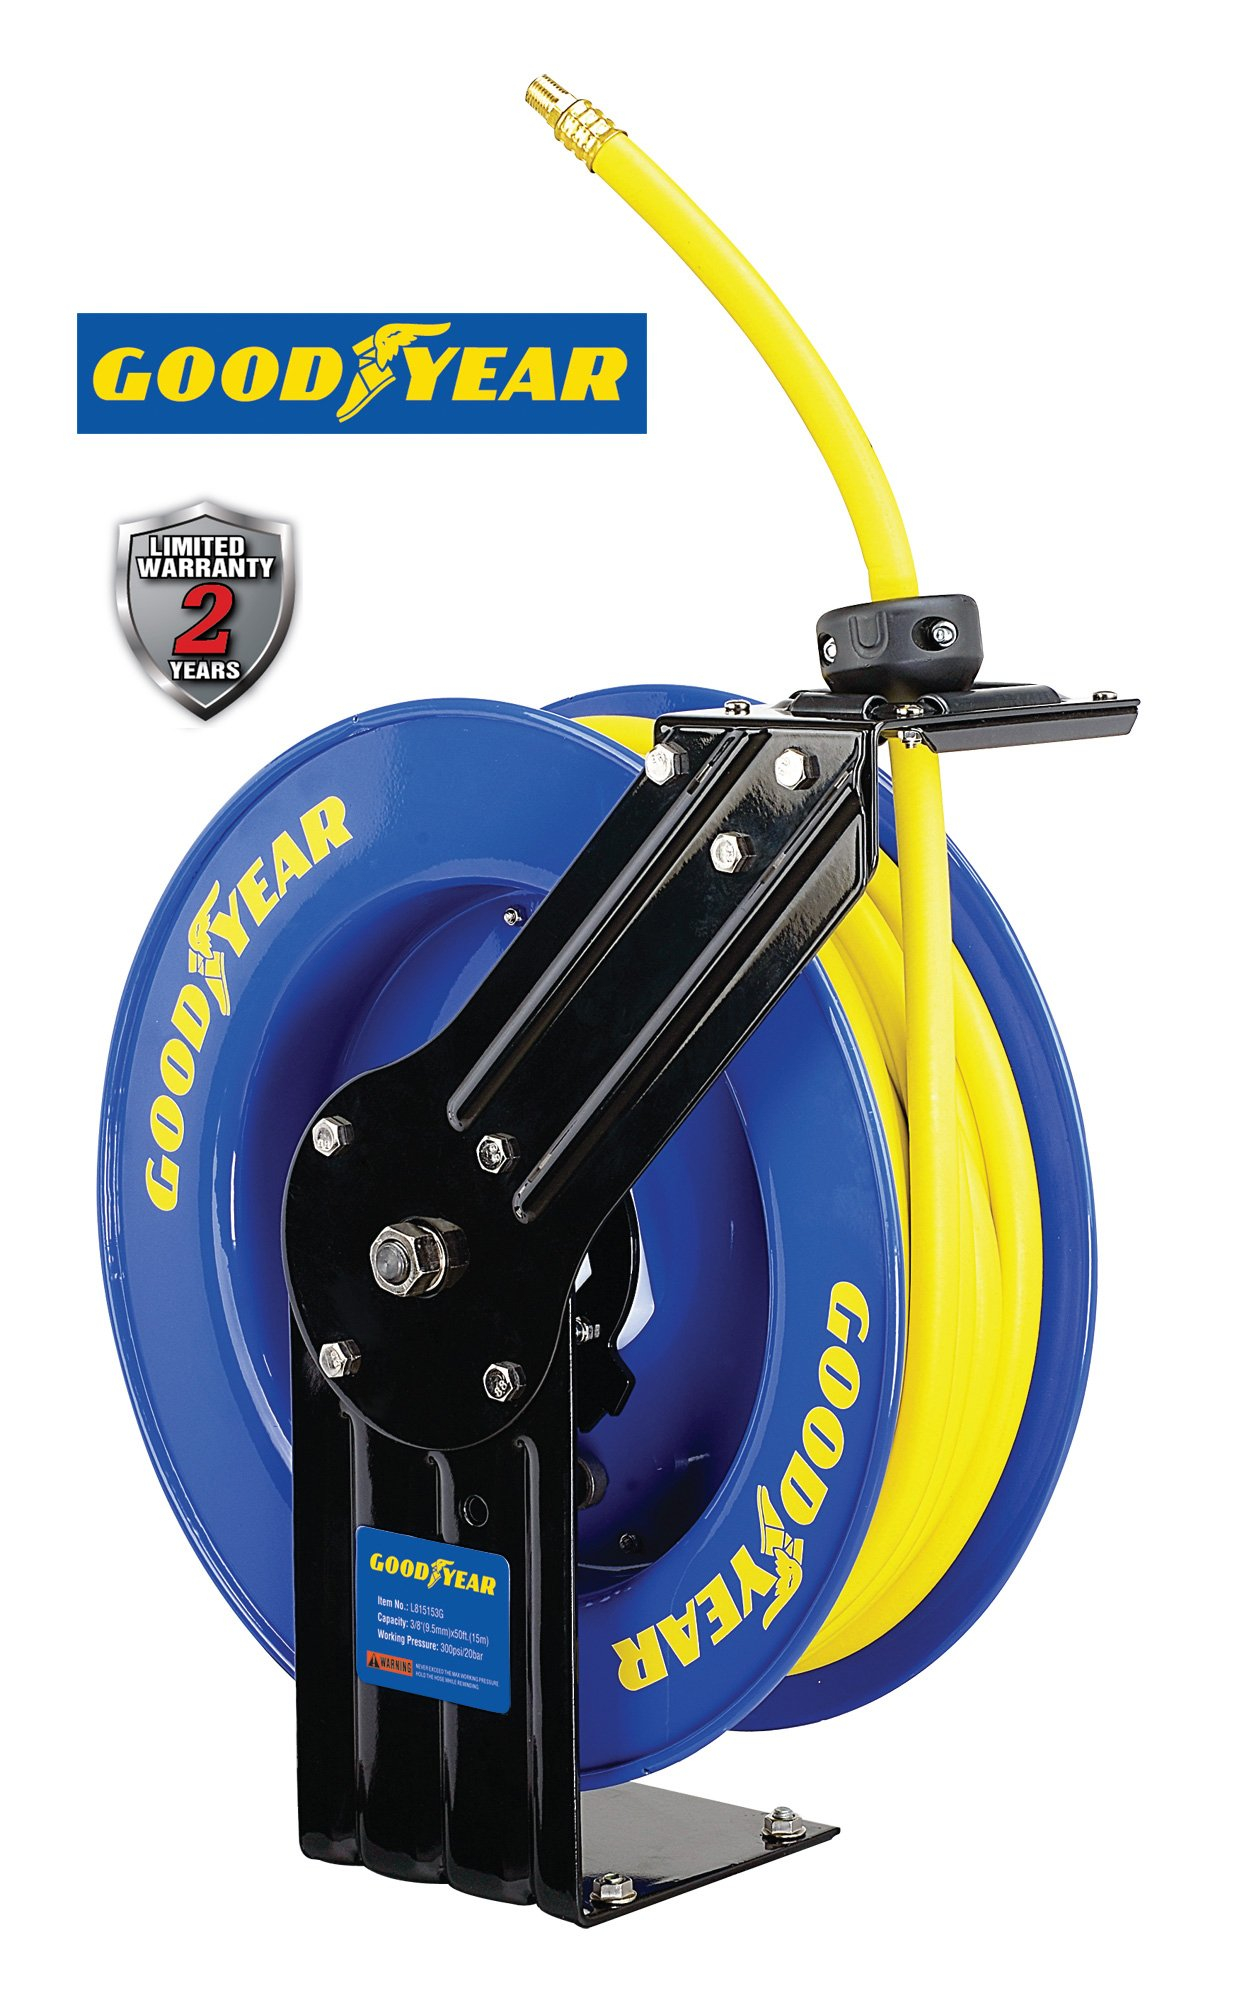 Goodyear L815153G Steel Retractable Air Compressor/Water Hose Reel with 3/8 in. x 50 ft. Rubber Hose, Max. 300PSI